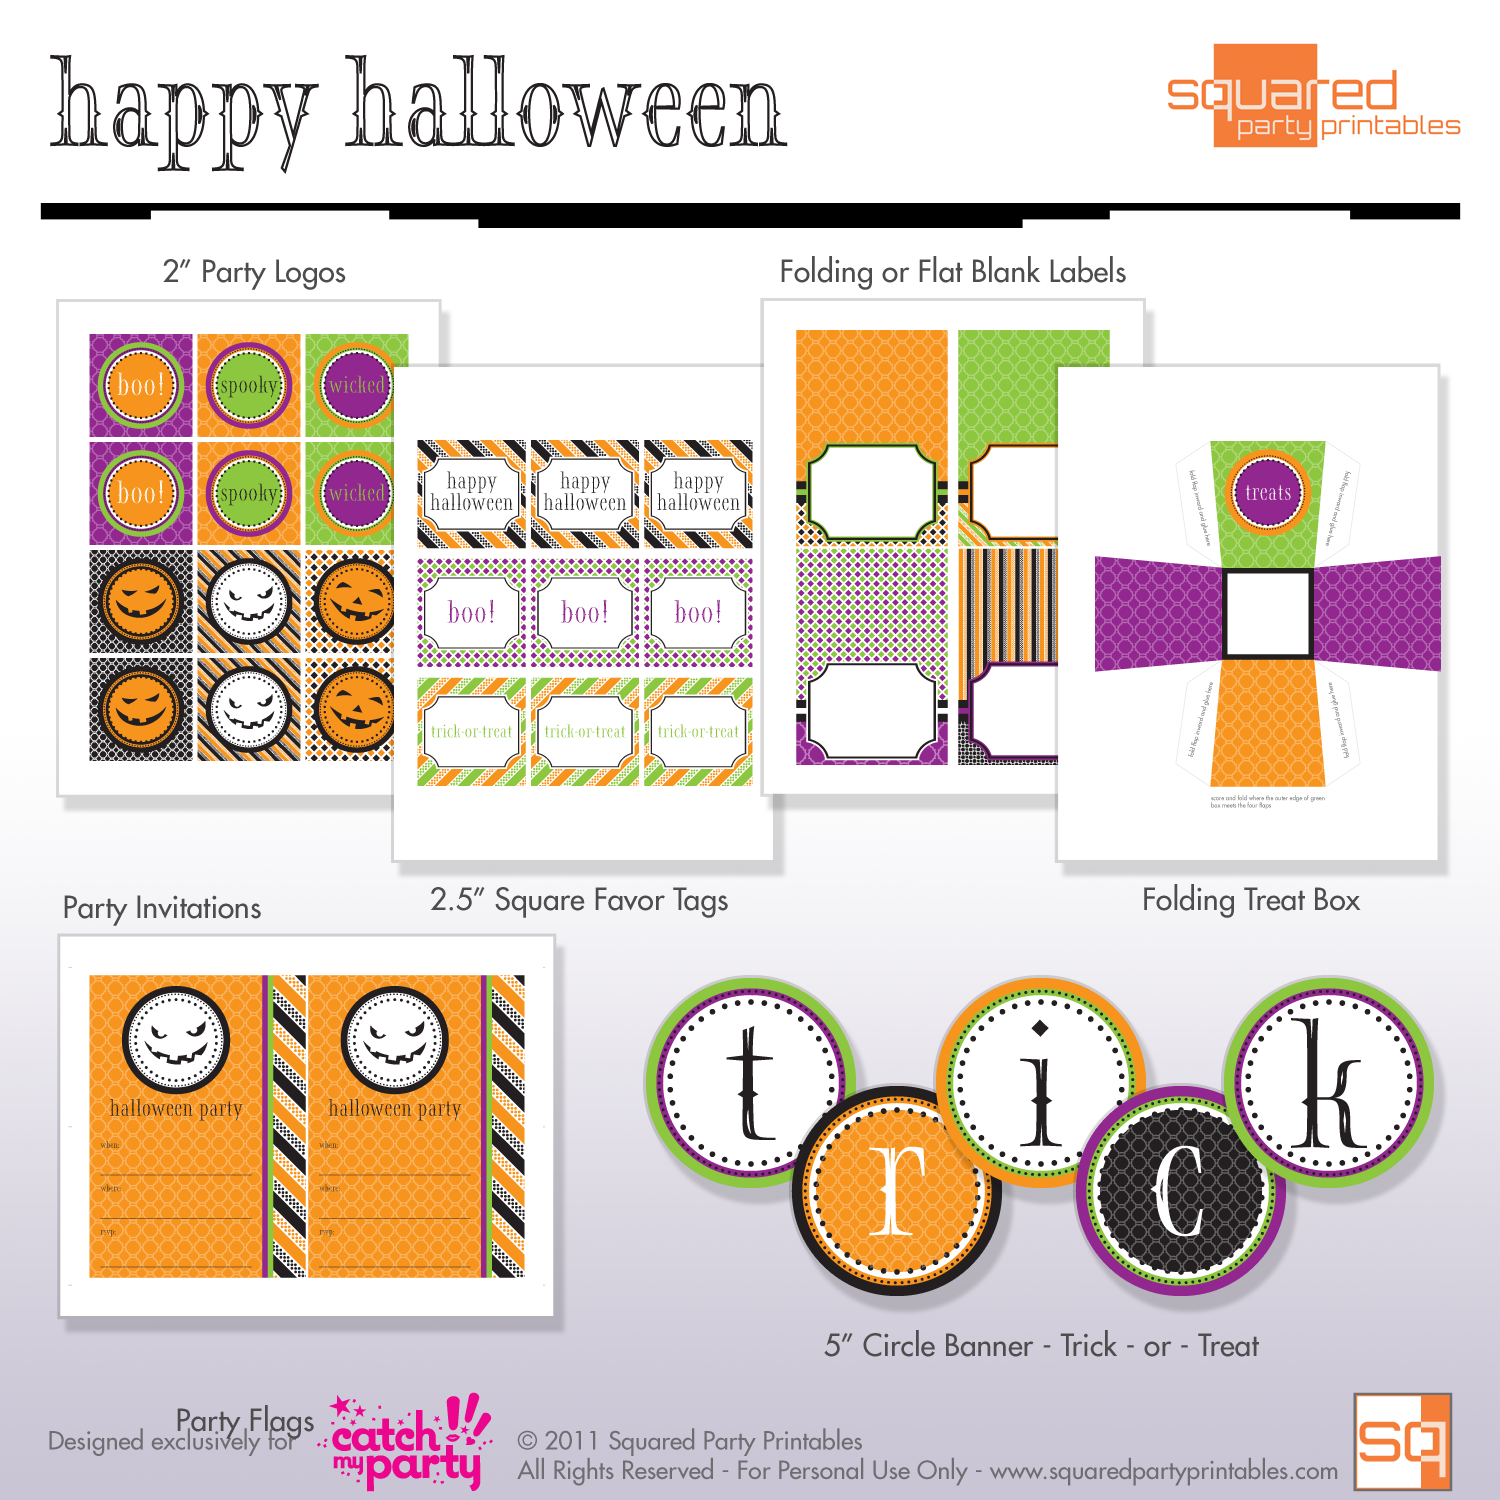 FREE Halloween Party Printables from Squared Party Printables ...